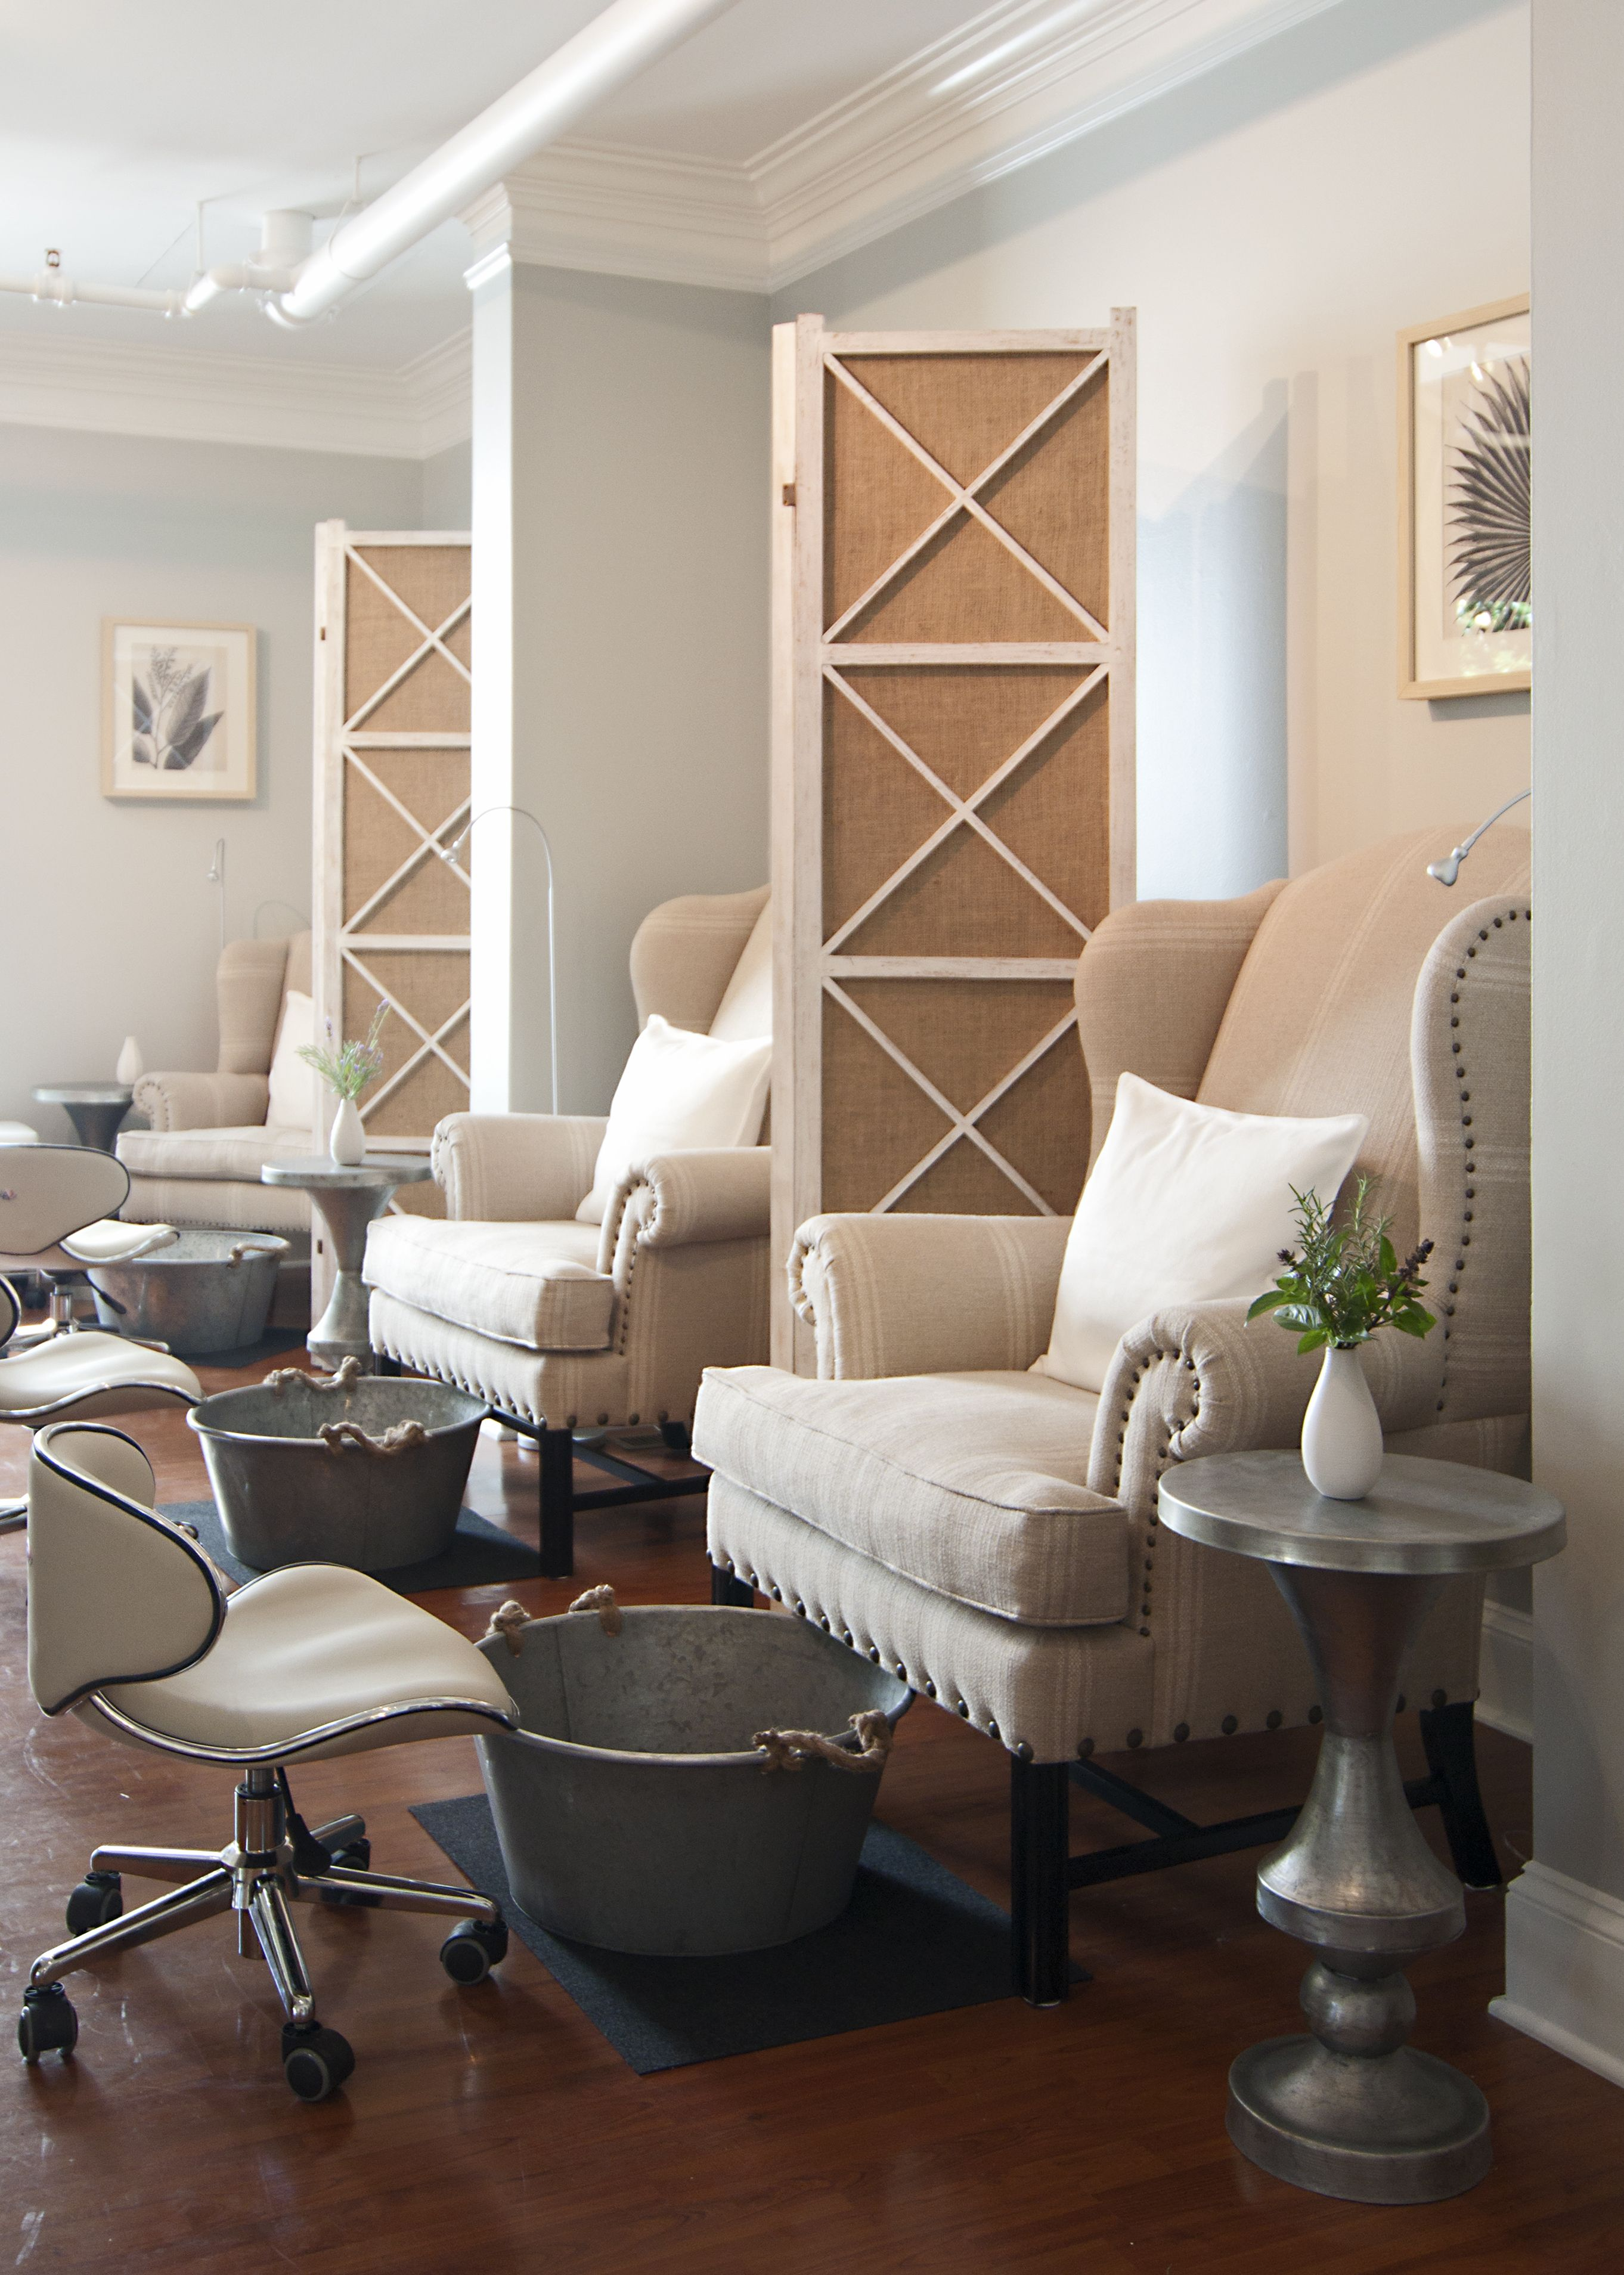 Pedicure Chair Ideas find this pin and more on nails salon ideas pedicure Pedicures Are A Very Luxurious But Organic Experience At The Fearrington Spa A Relais Pedicure Salon Ideaspedicure Chairpedicure